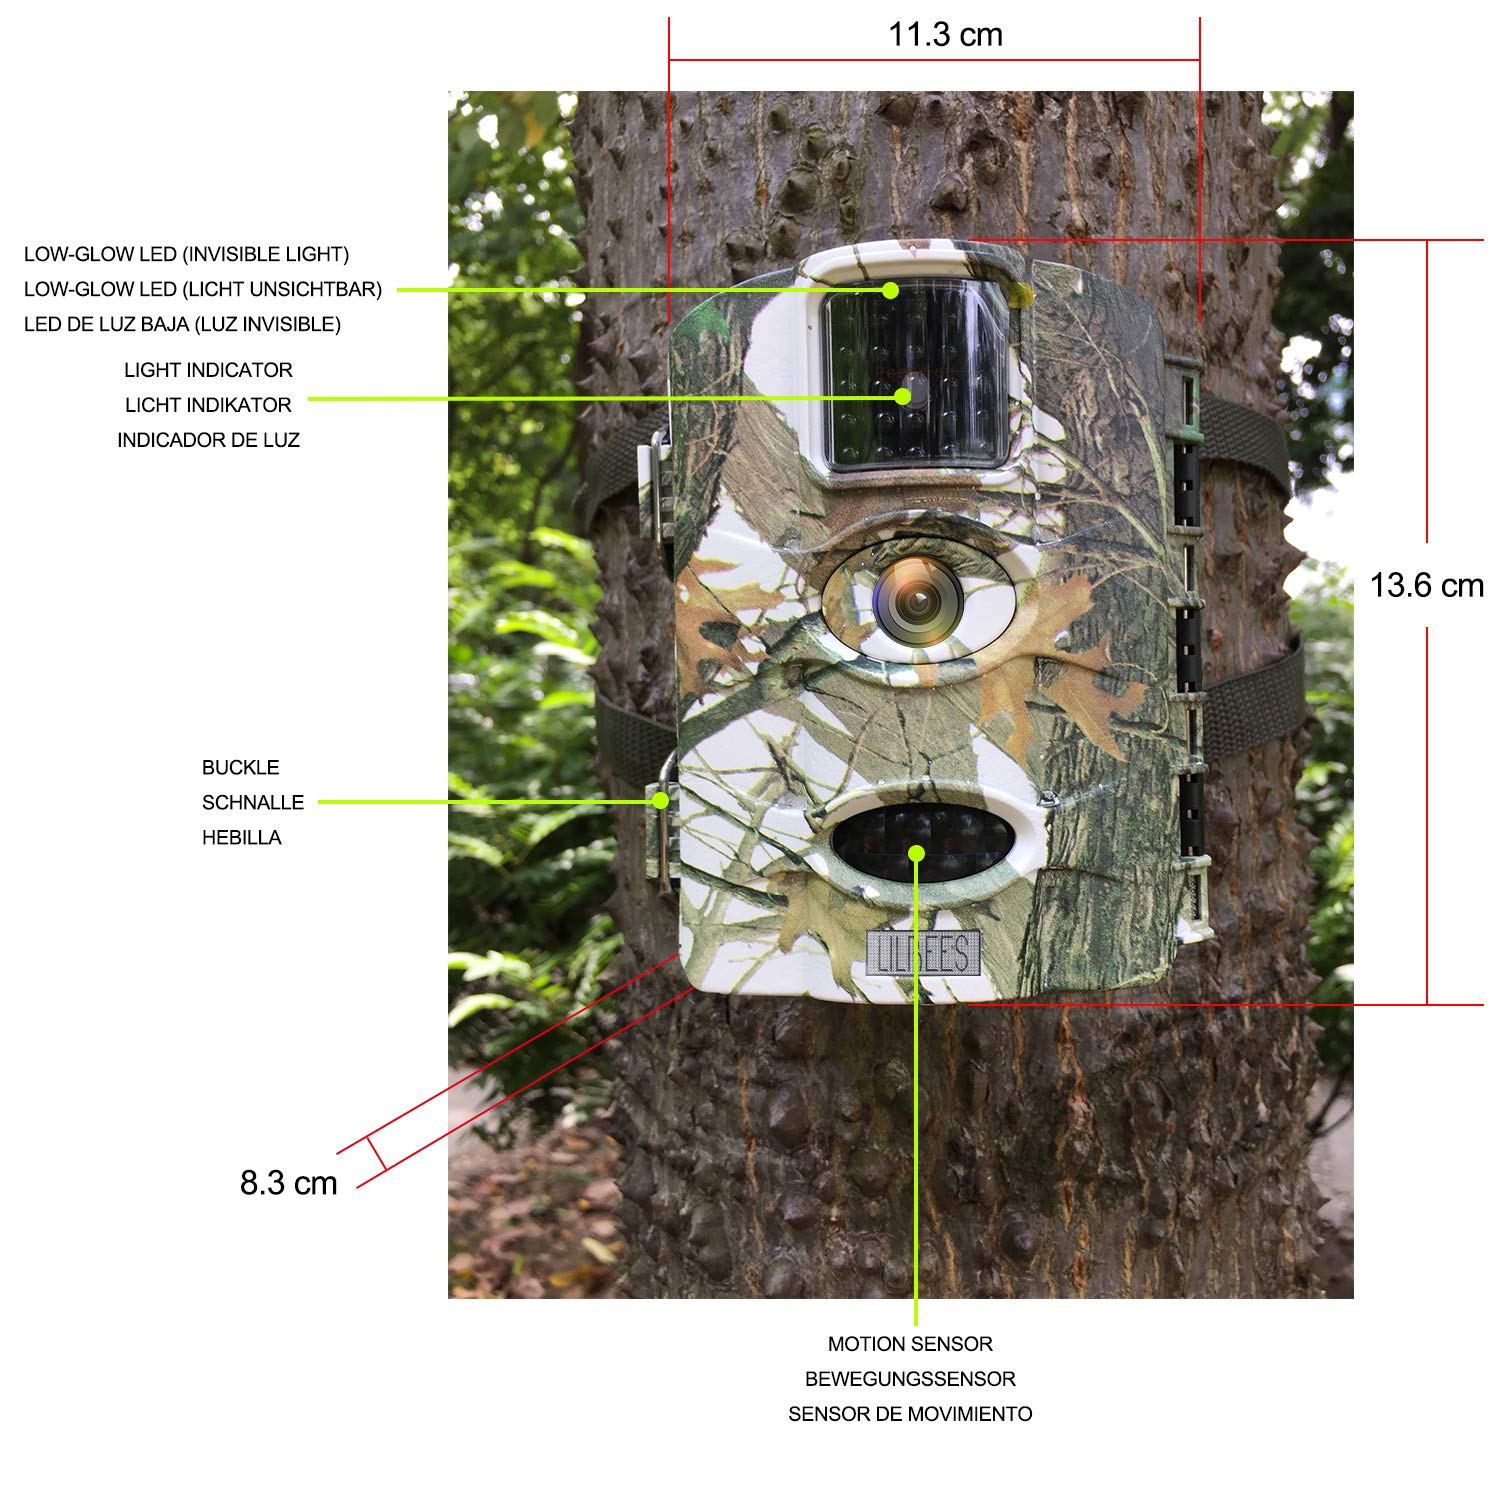 Amazon.com : Lilbees Trail Game Camera 16MP 1080P Waterproof Hunting Scouting Cam Wildlife Monitoring Motion Activated Night Vision 2.4